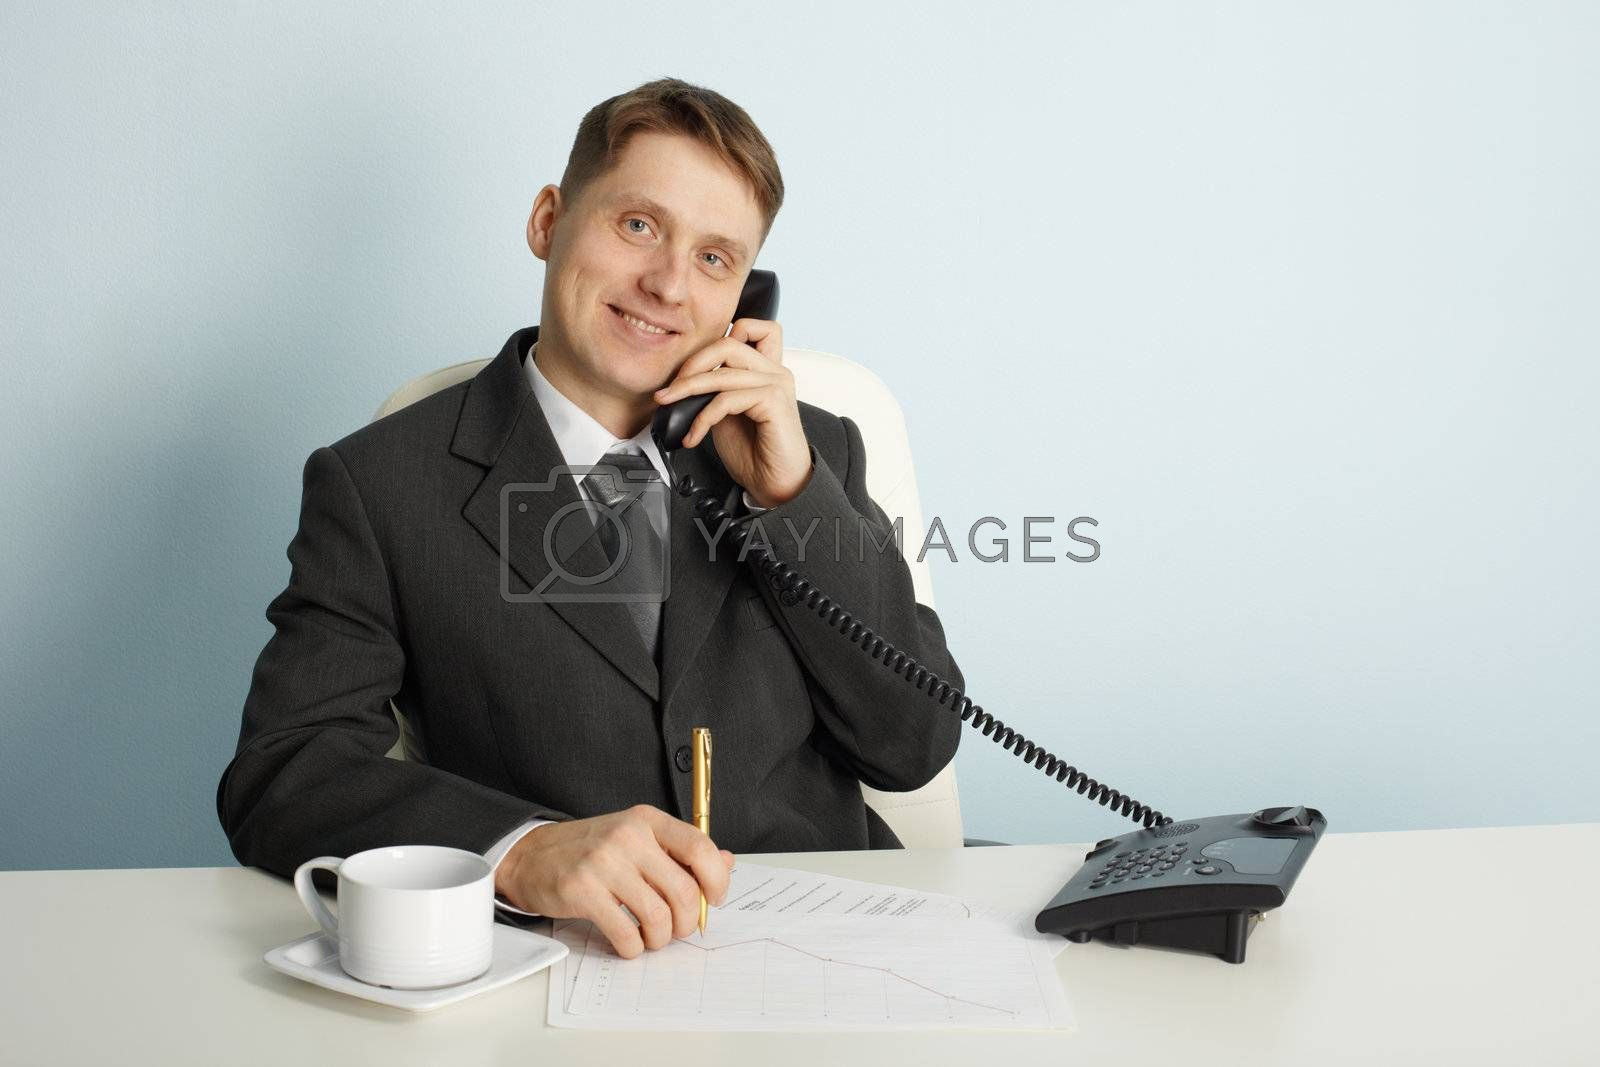 Royalty free image of Smiling businessman in talks on phone by pzaxe